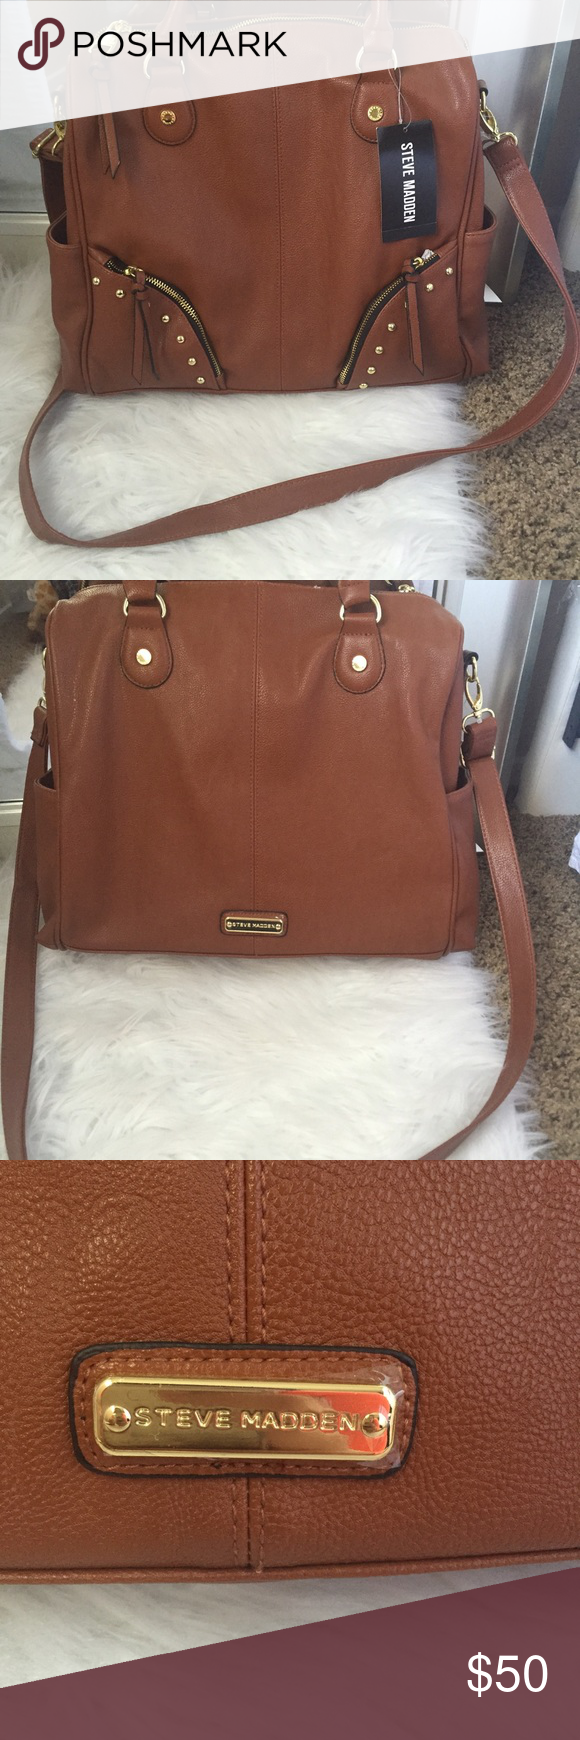 6656768d9f Brand new purse! It has a removable shoulder strap so you can wear it  however you want. Price is firm! Steve Madden Bags Shoulder Bags